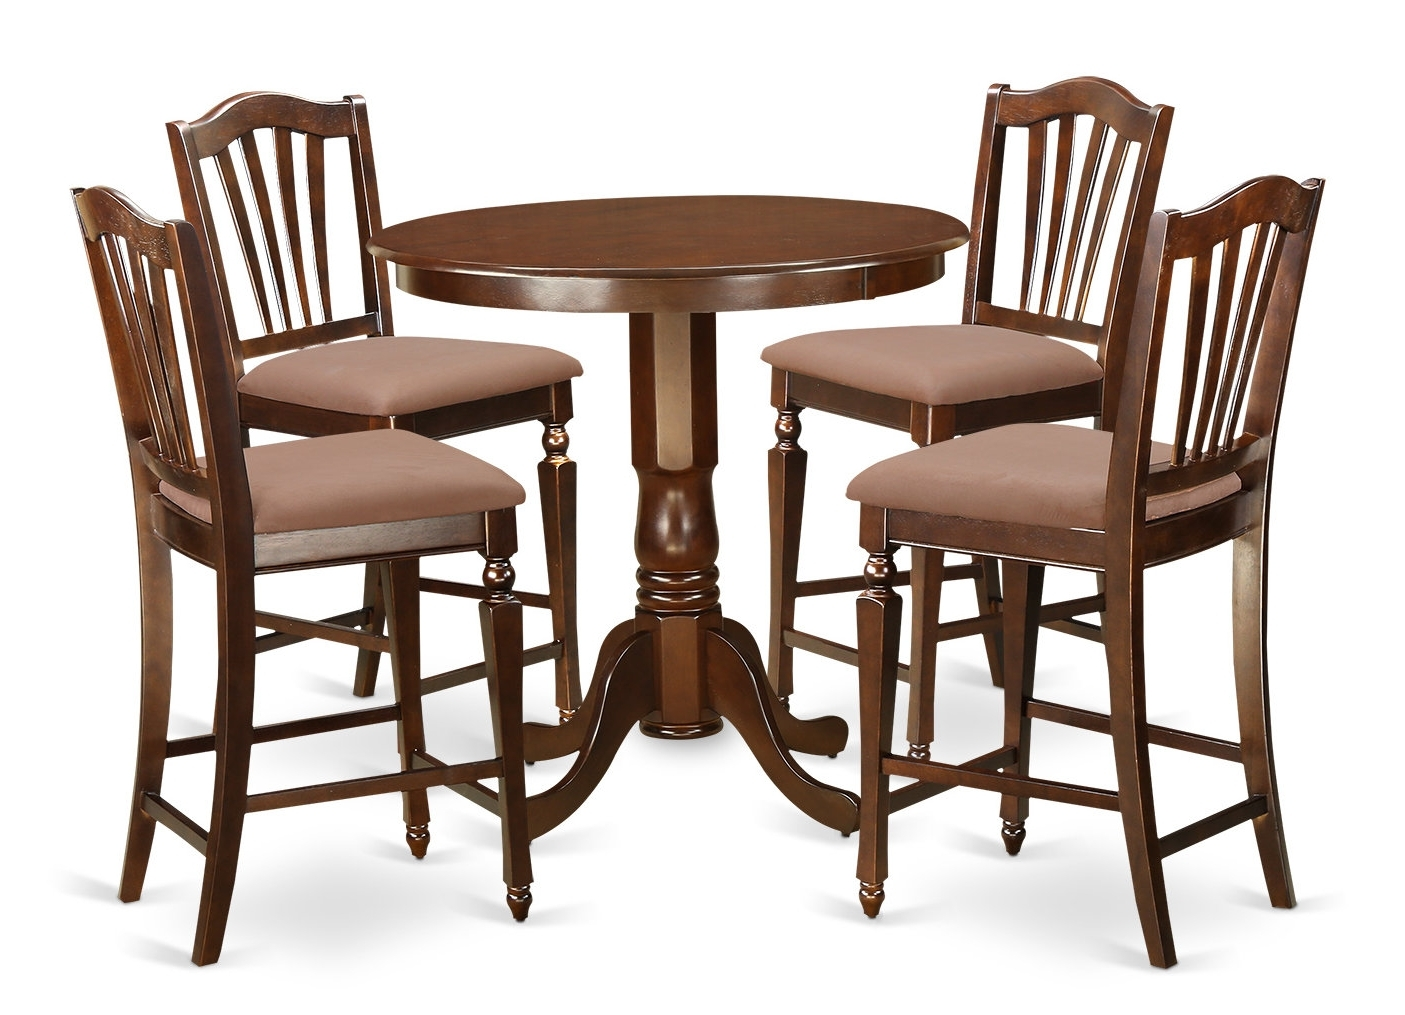 Widely Used Jaxon Grey 7 Piece Rectangle Extension Dining Sets With Uph Chairs For East West Jackson 5 Piece Counter Height Pub Table Set (View 16 of 25)